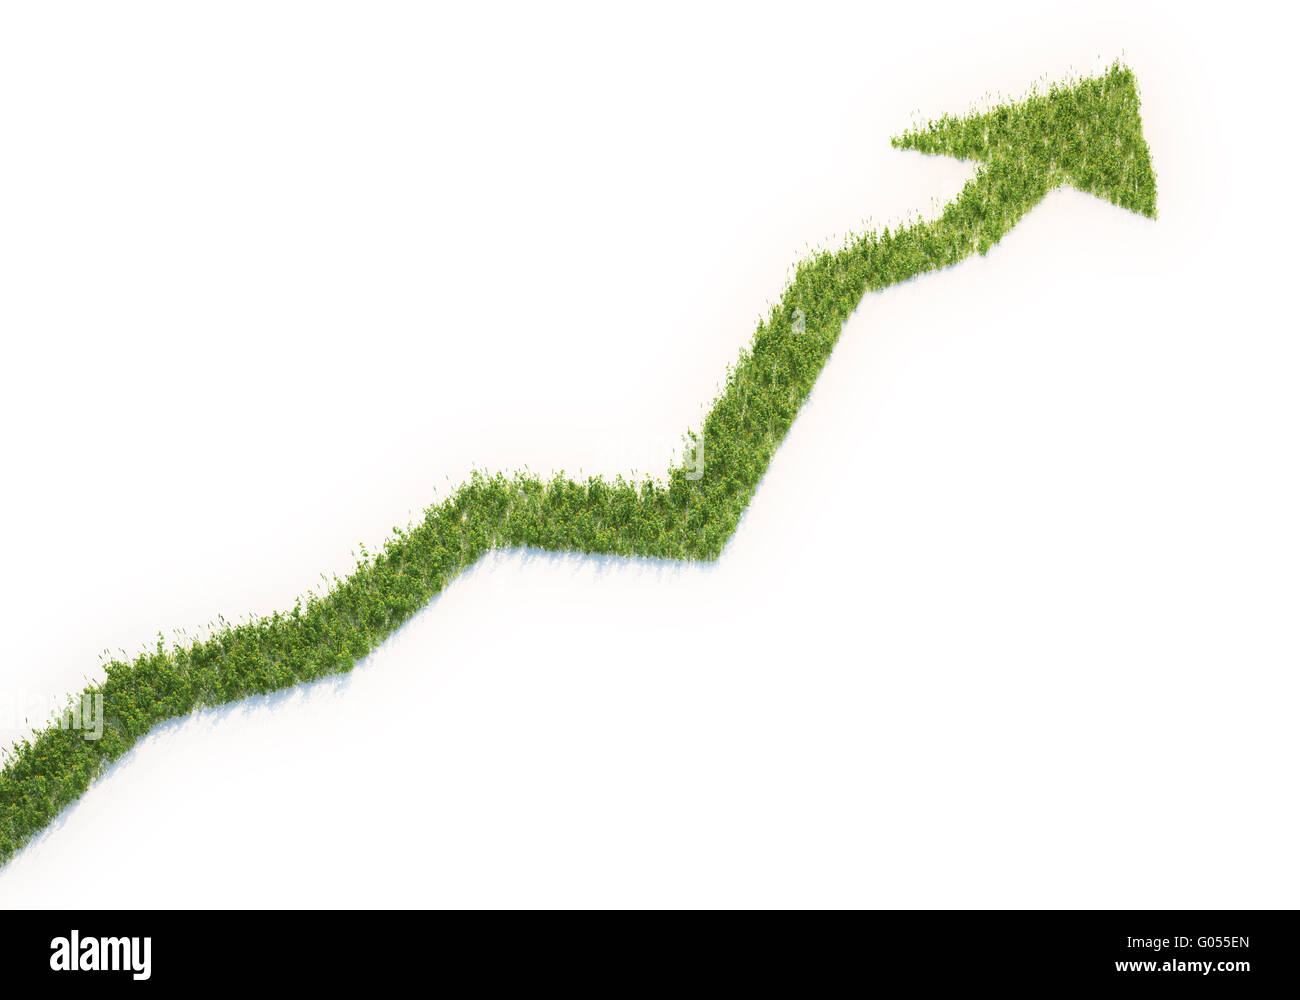 Grass patch shaped like a graph - eco business concept - Stock Image